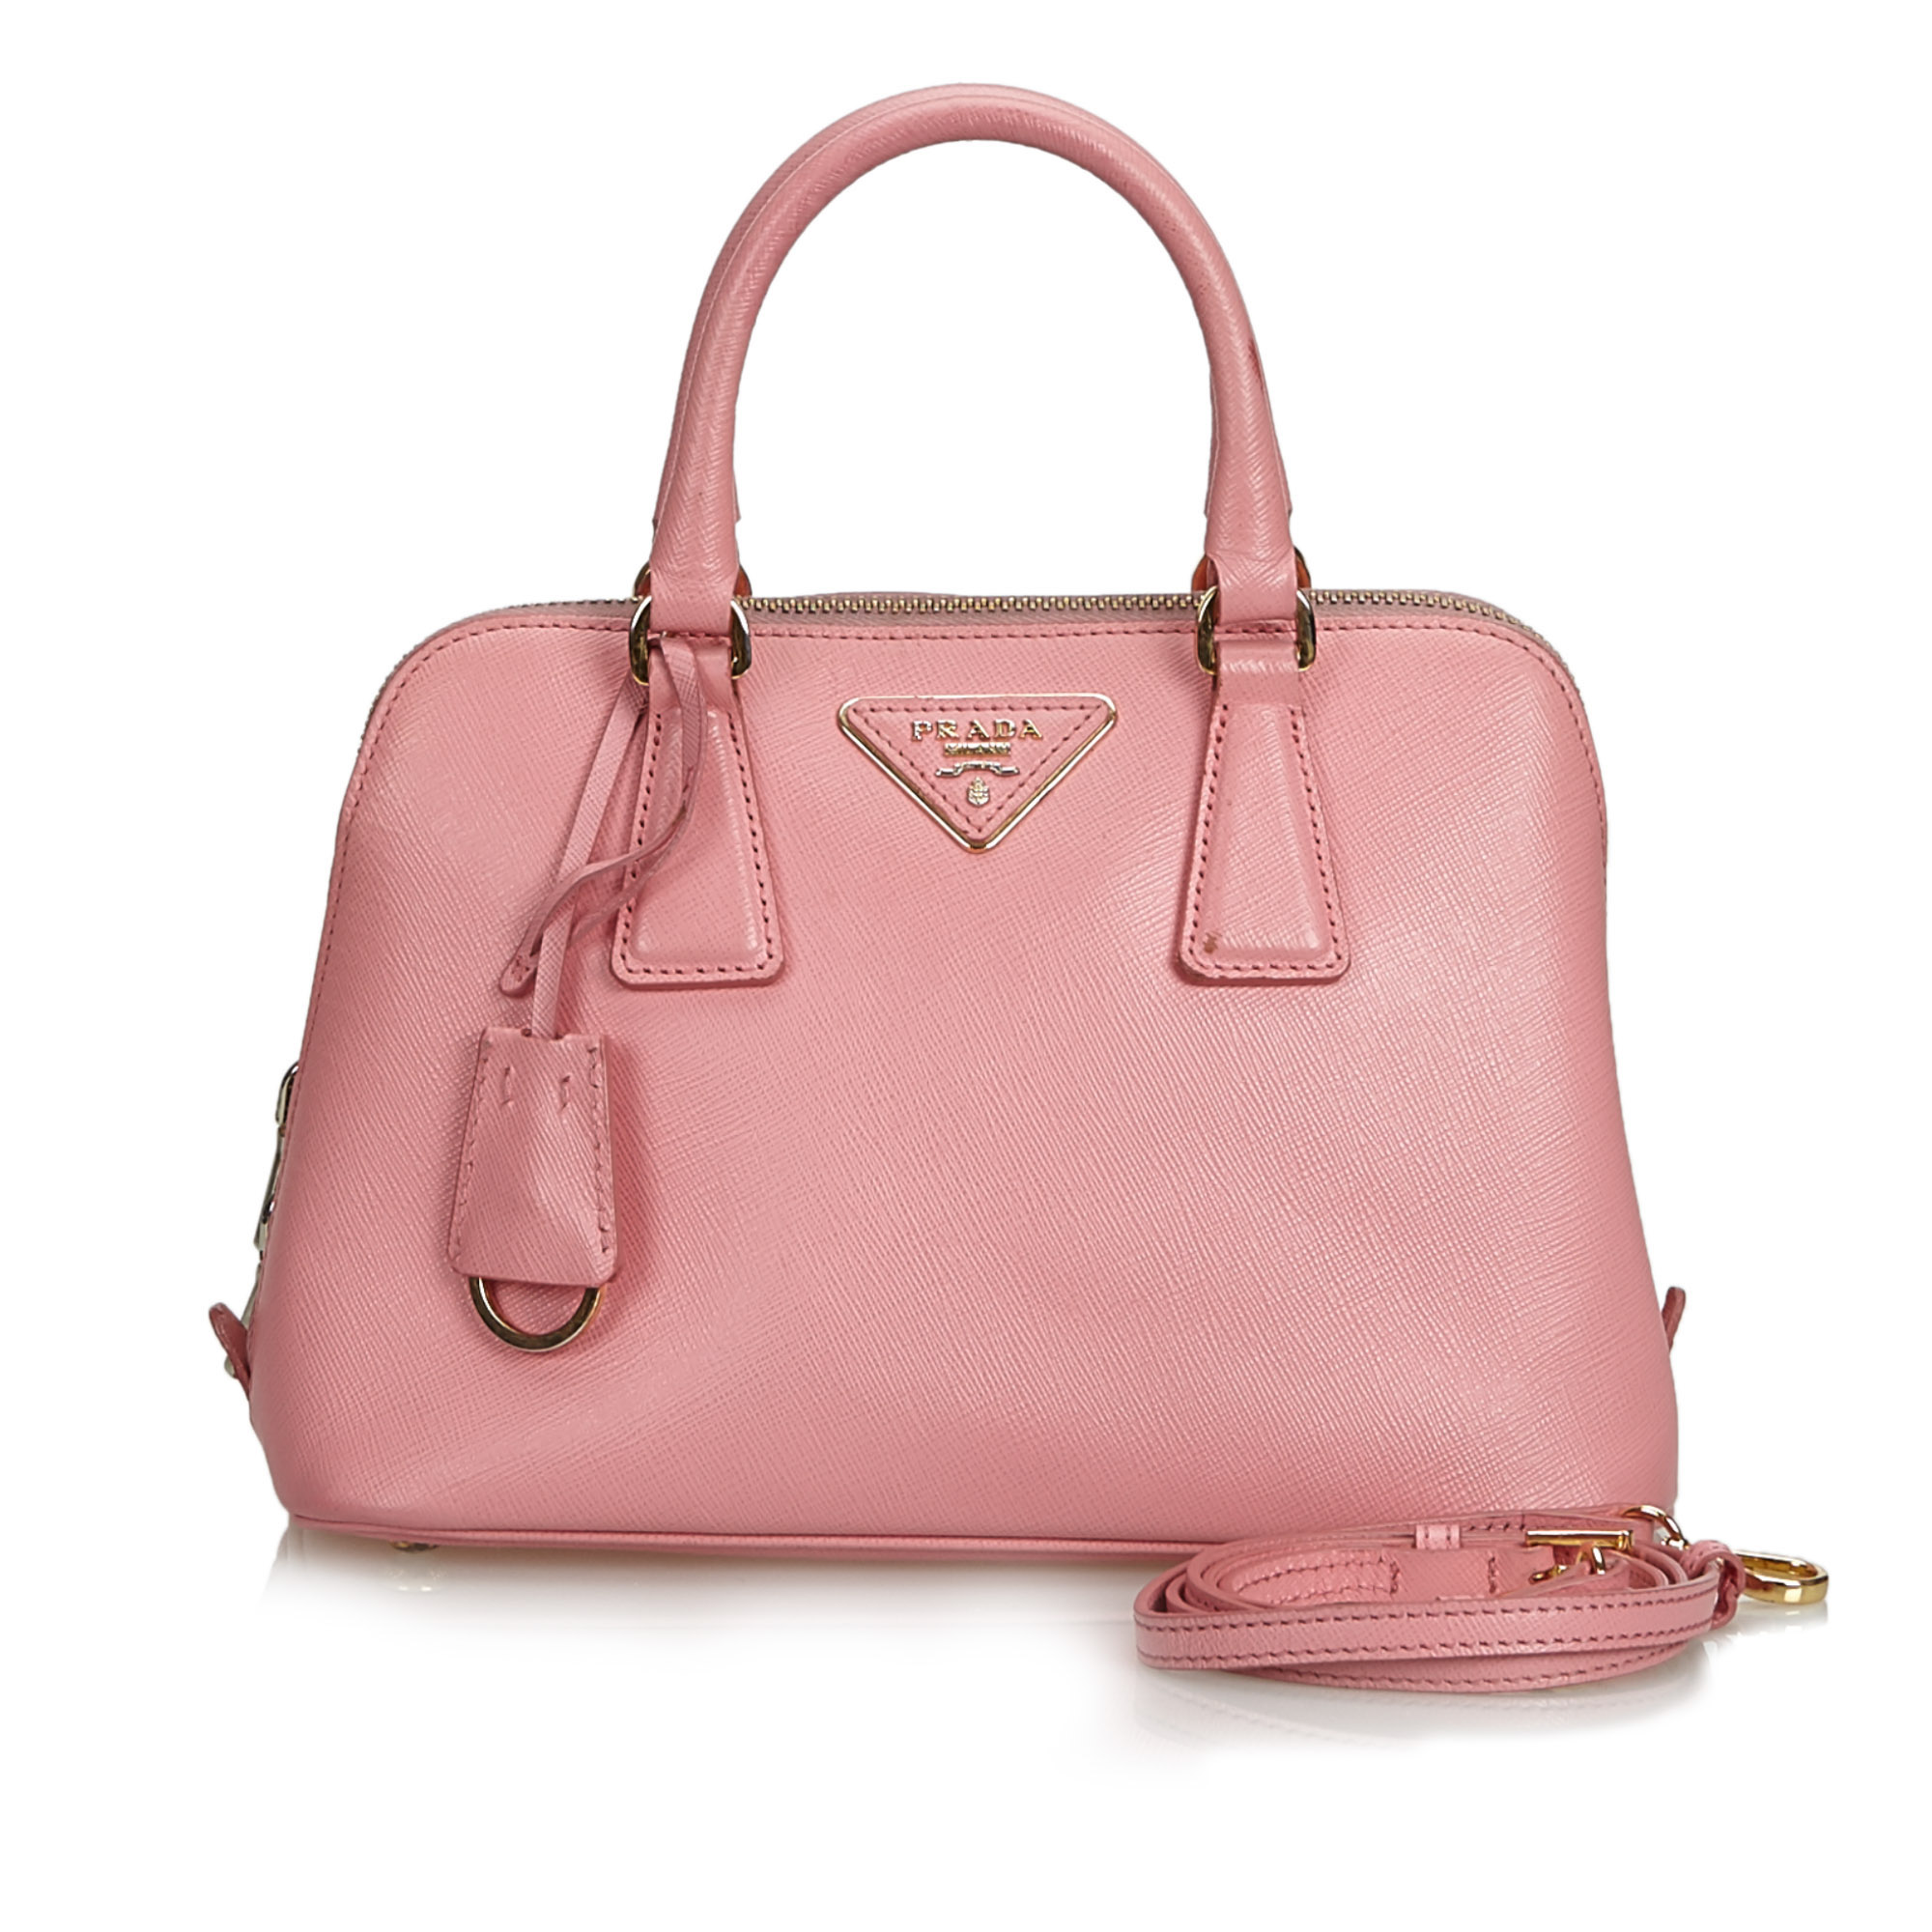 8a38cad3892571 Image is loading Vintage-Prada-Pink-Others-Leather-Saffiano-Lux-Promenade-